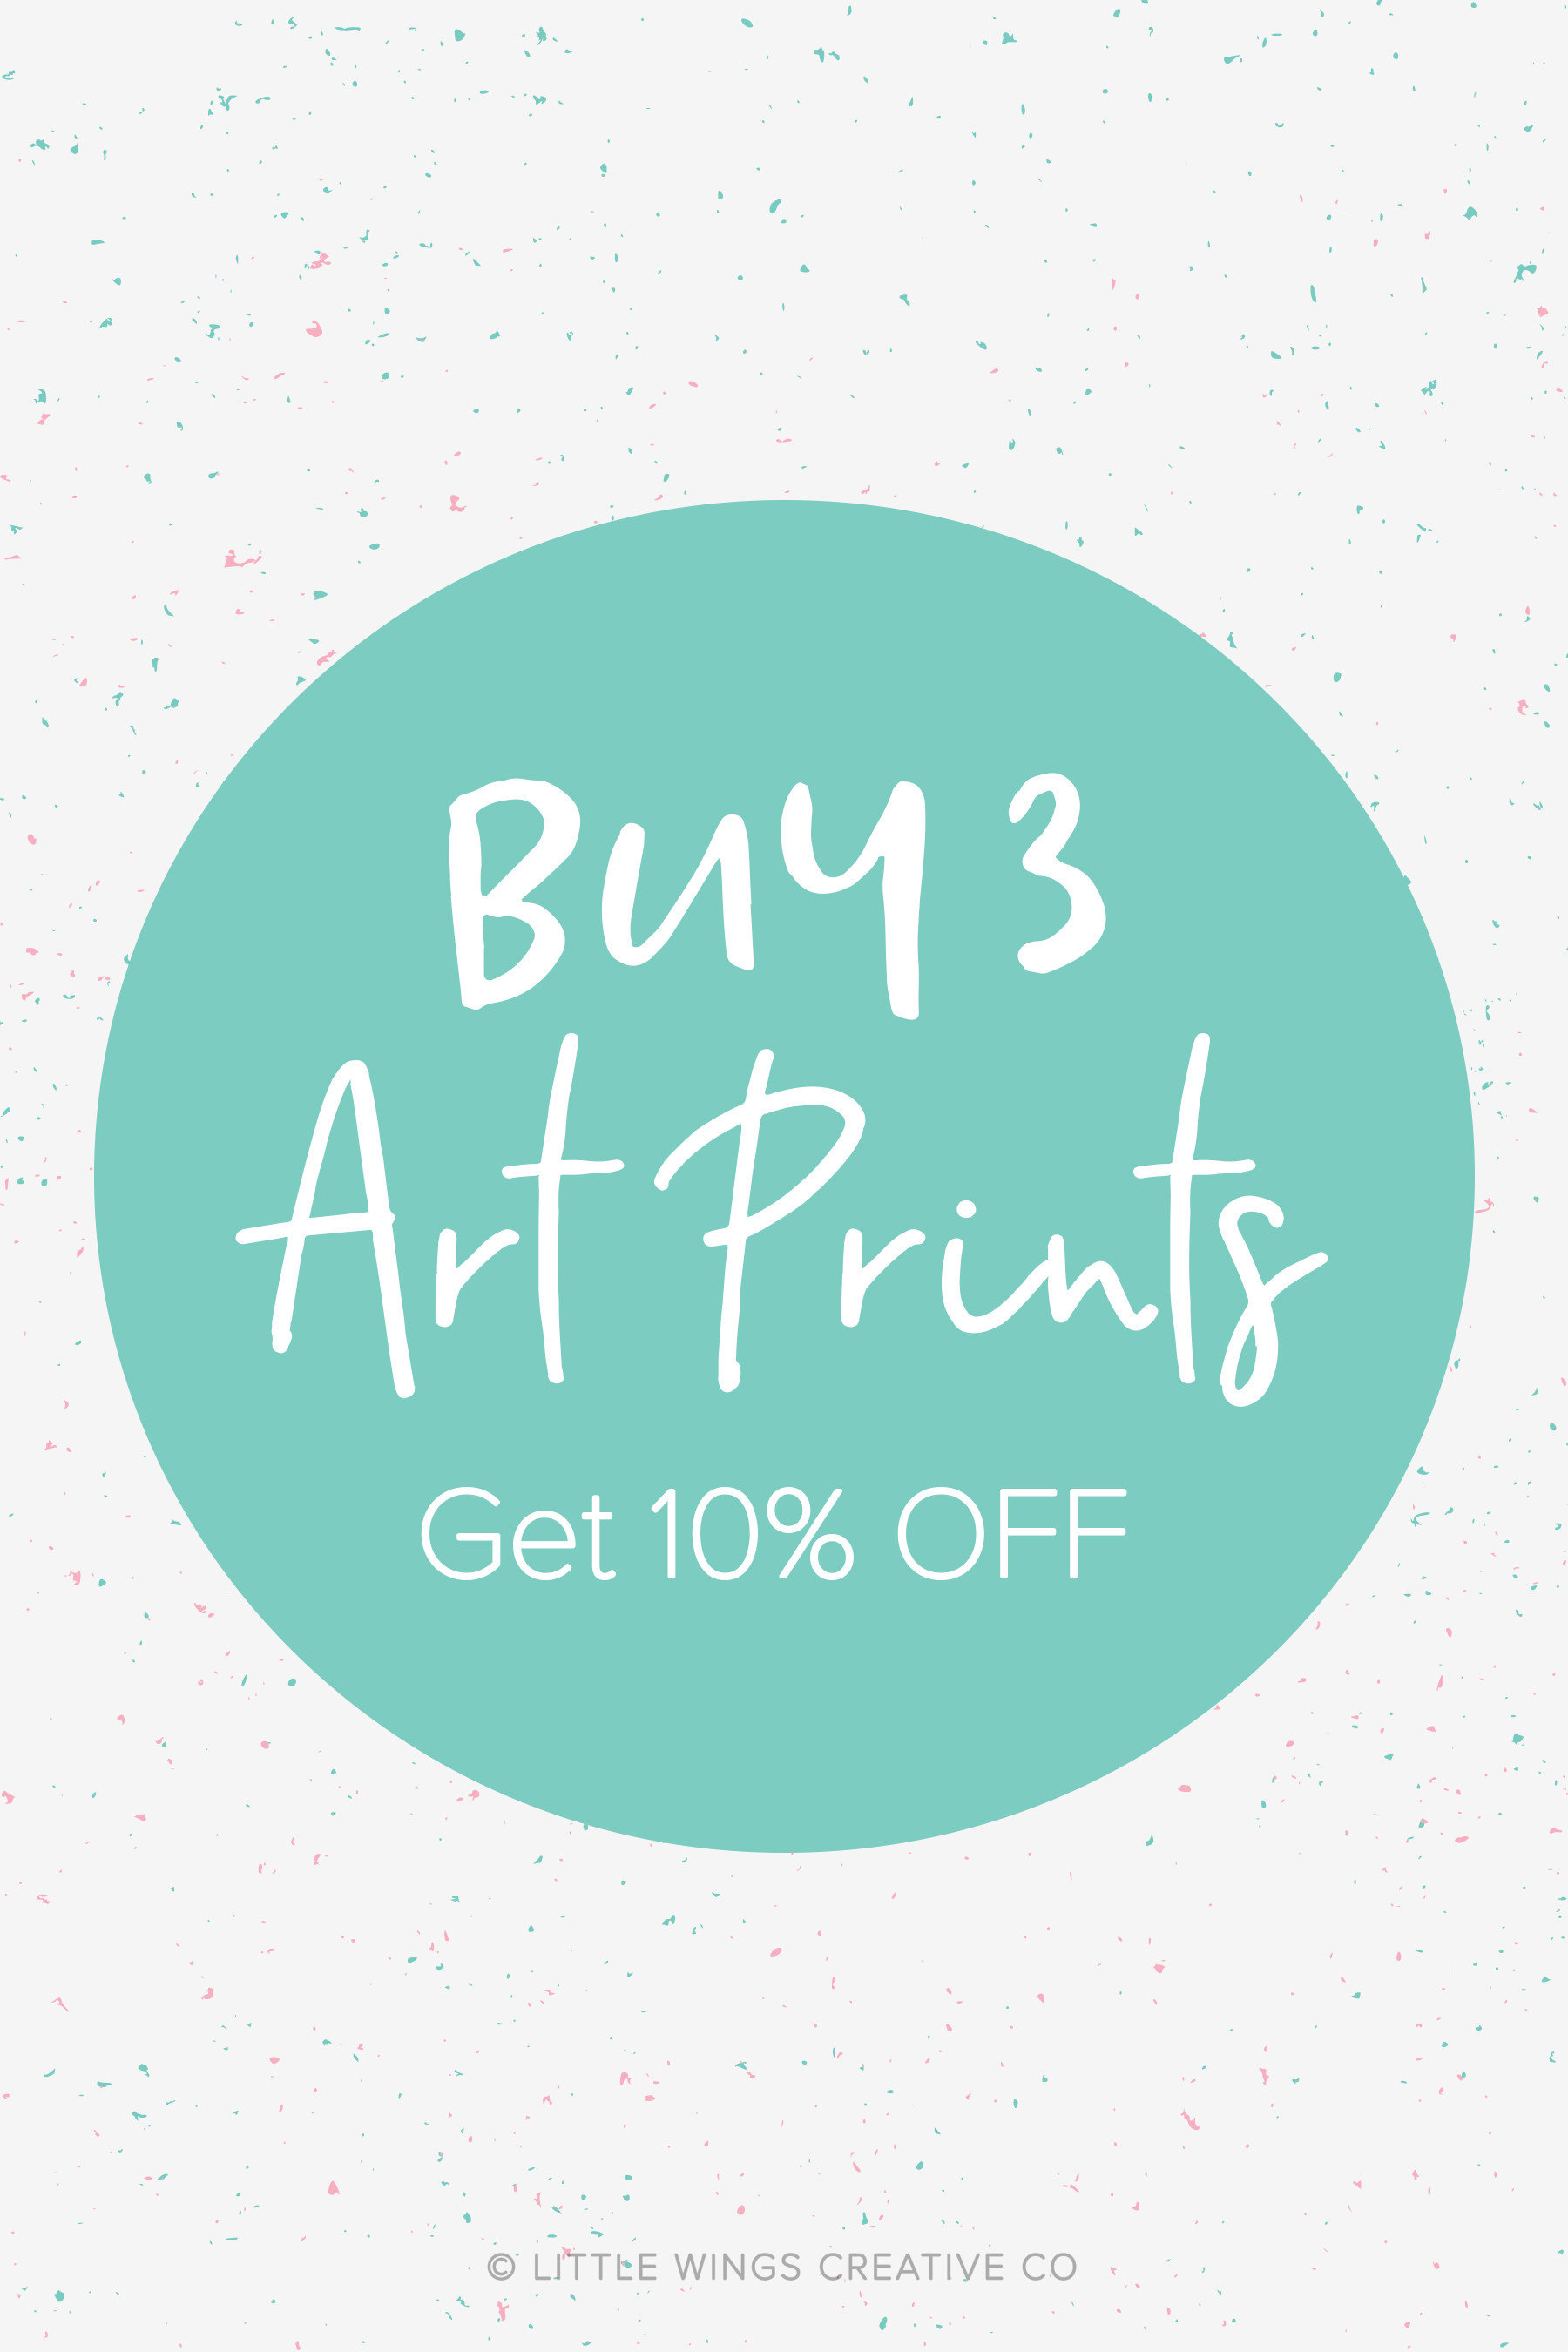 Buy-3-Art-Prints-Offer-10